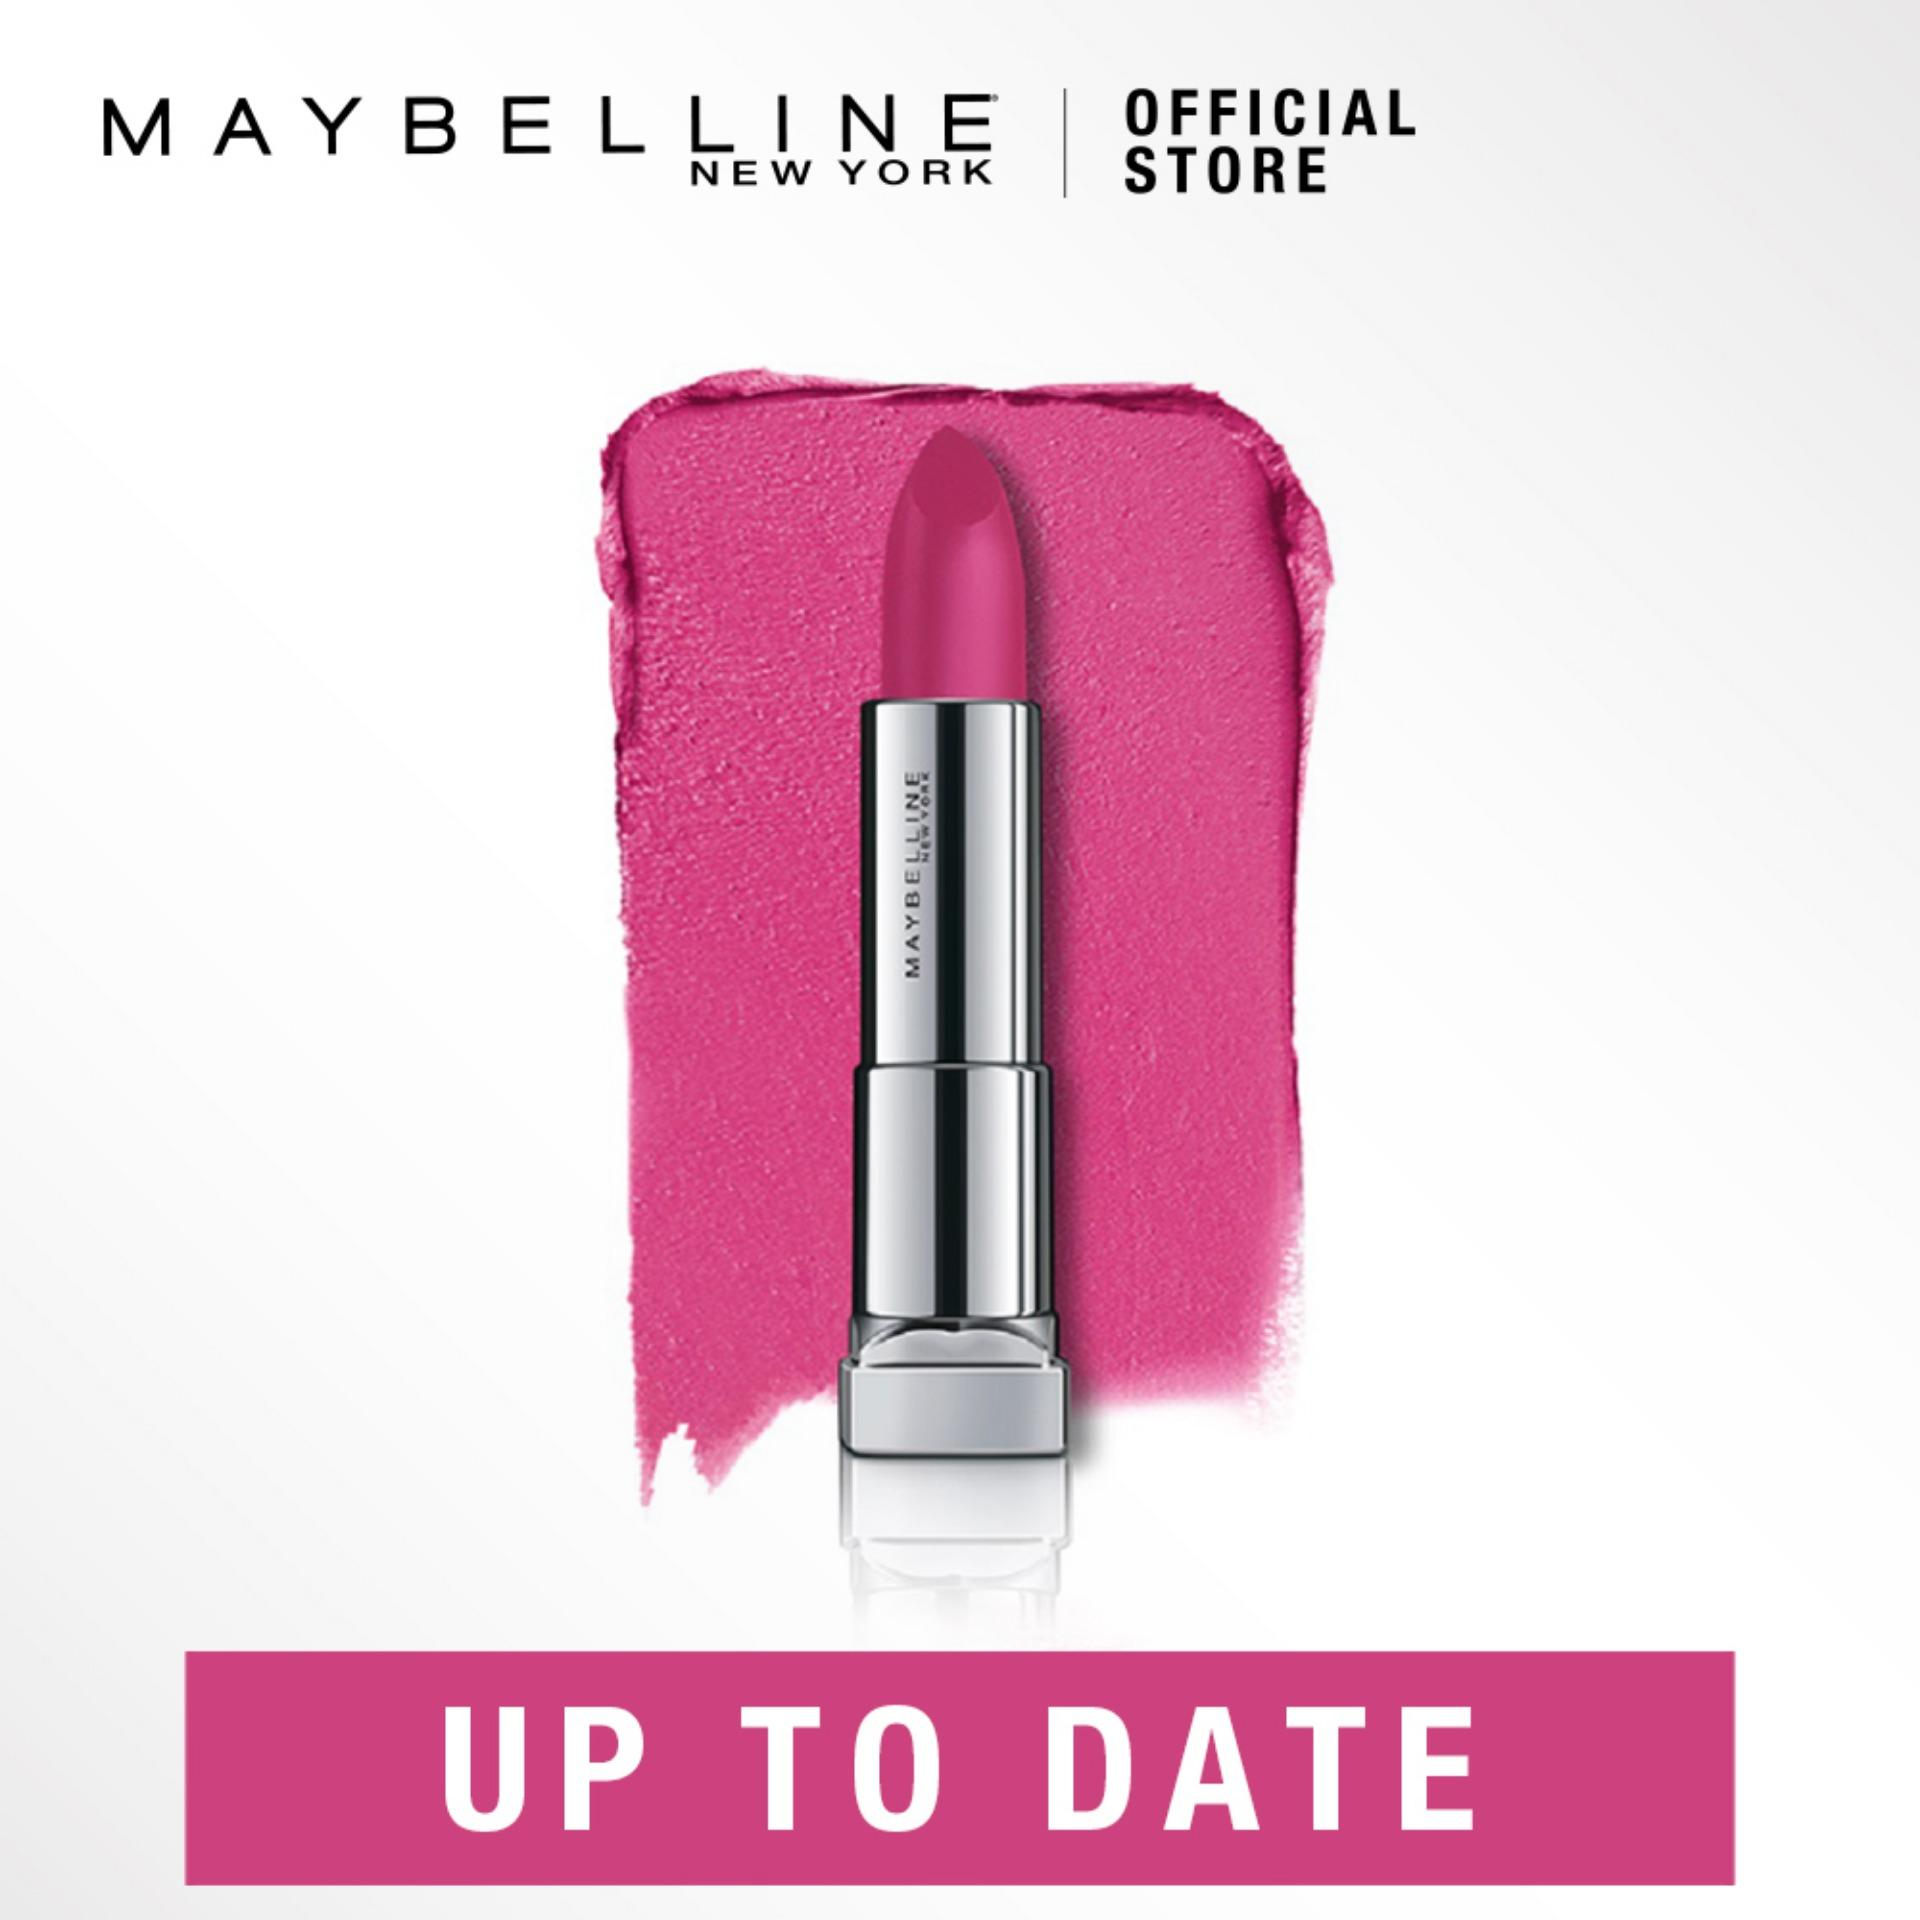 Maybelline Colorsensational Powder Matte